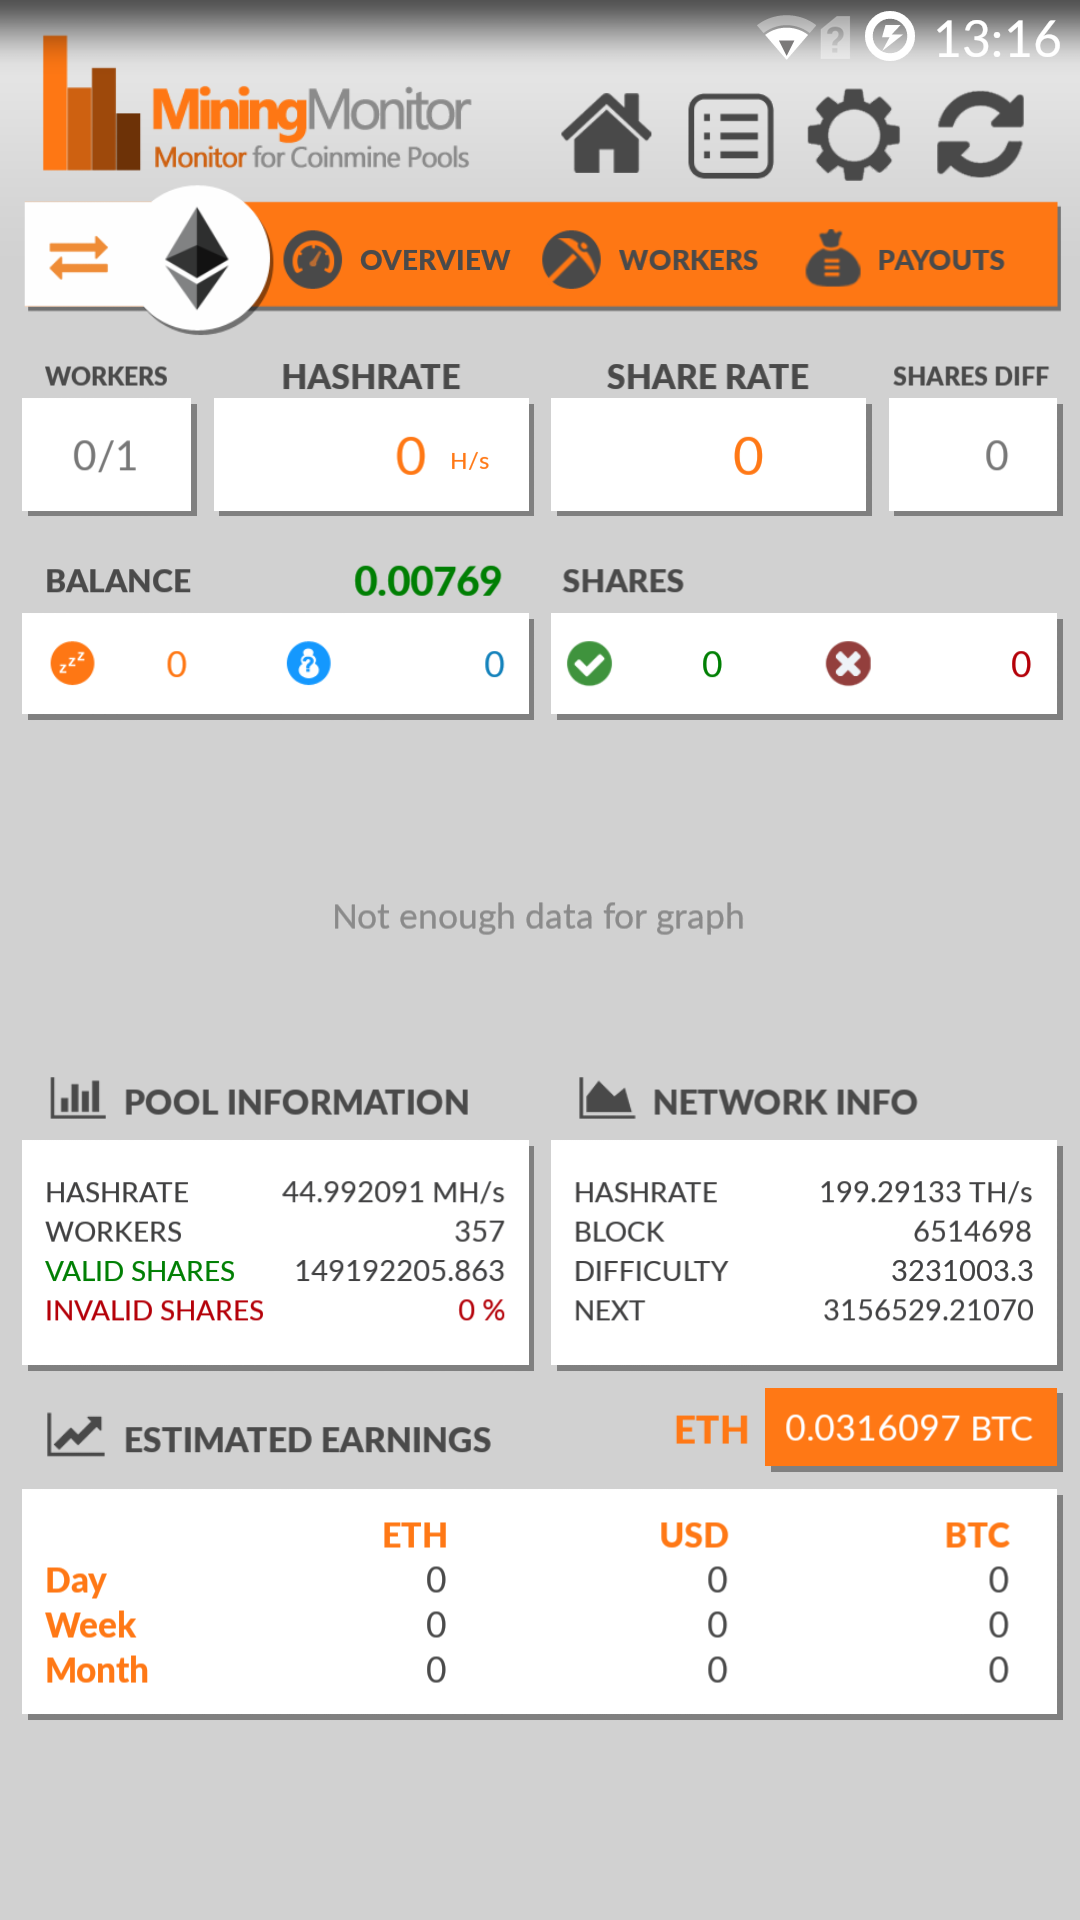 Mining Monitor 4 Coinmine pools